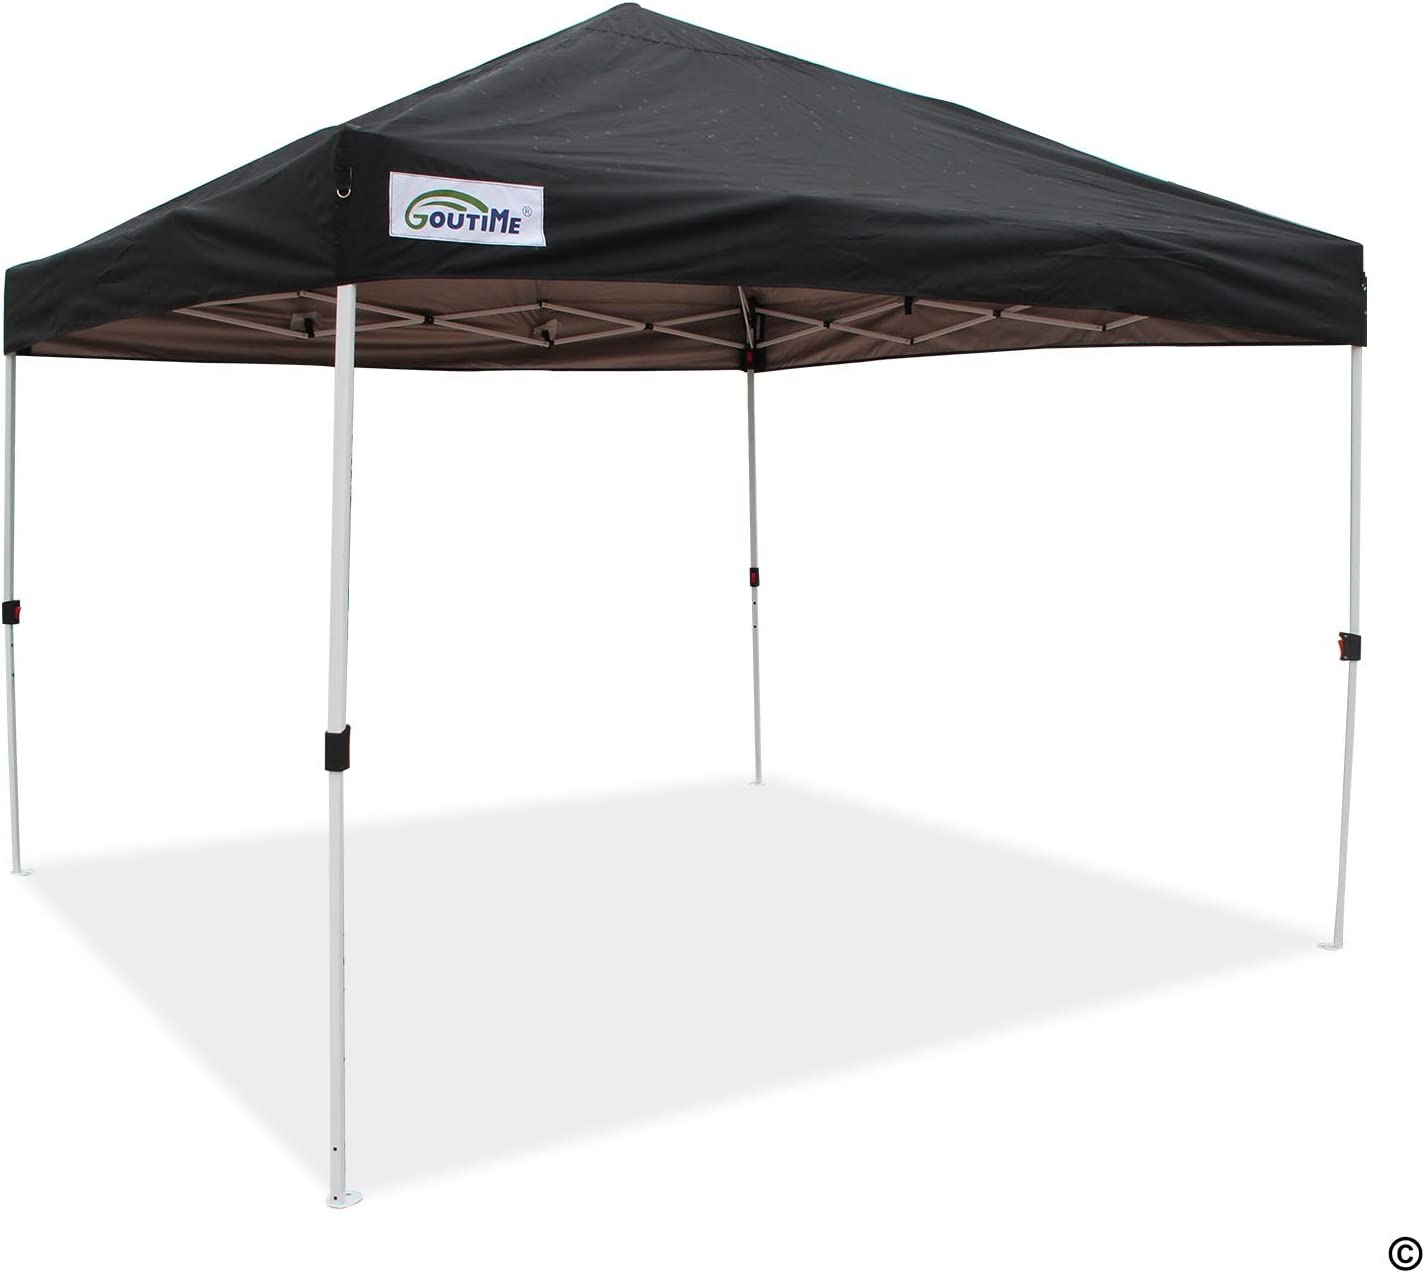 Goutime Waterproof 10×10 Canopy, Portable Pop Up Canopy Tent with Wheeled Roller Bag, Bonus 4 Stakes and Ropes 10 x10 , Black